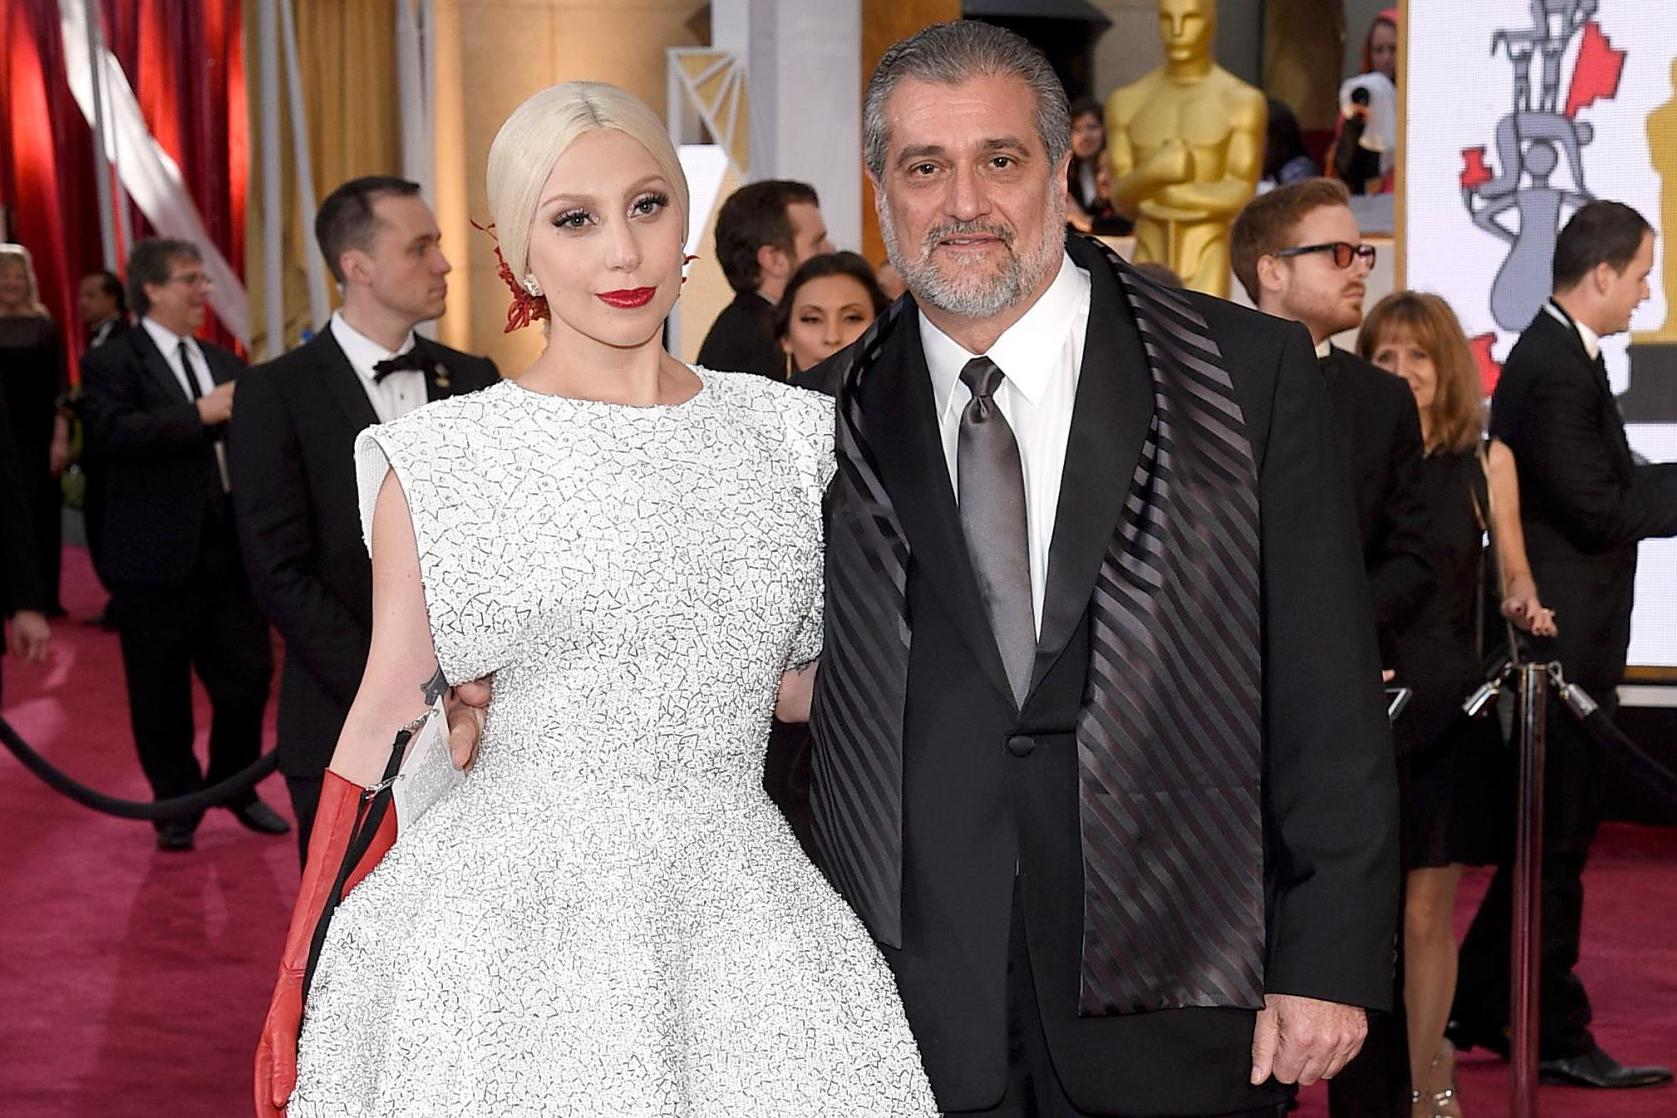 Lady Gaga's father holds back payments on New York restaurant over homeless dispute